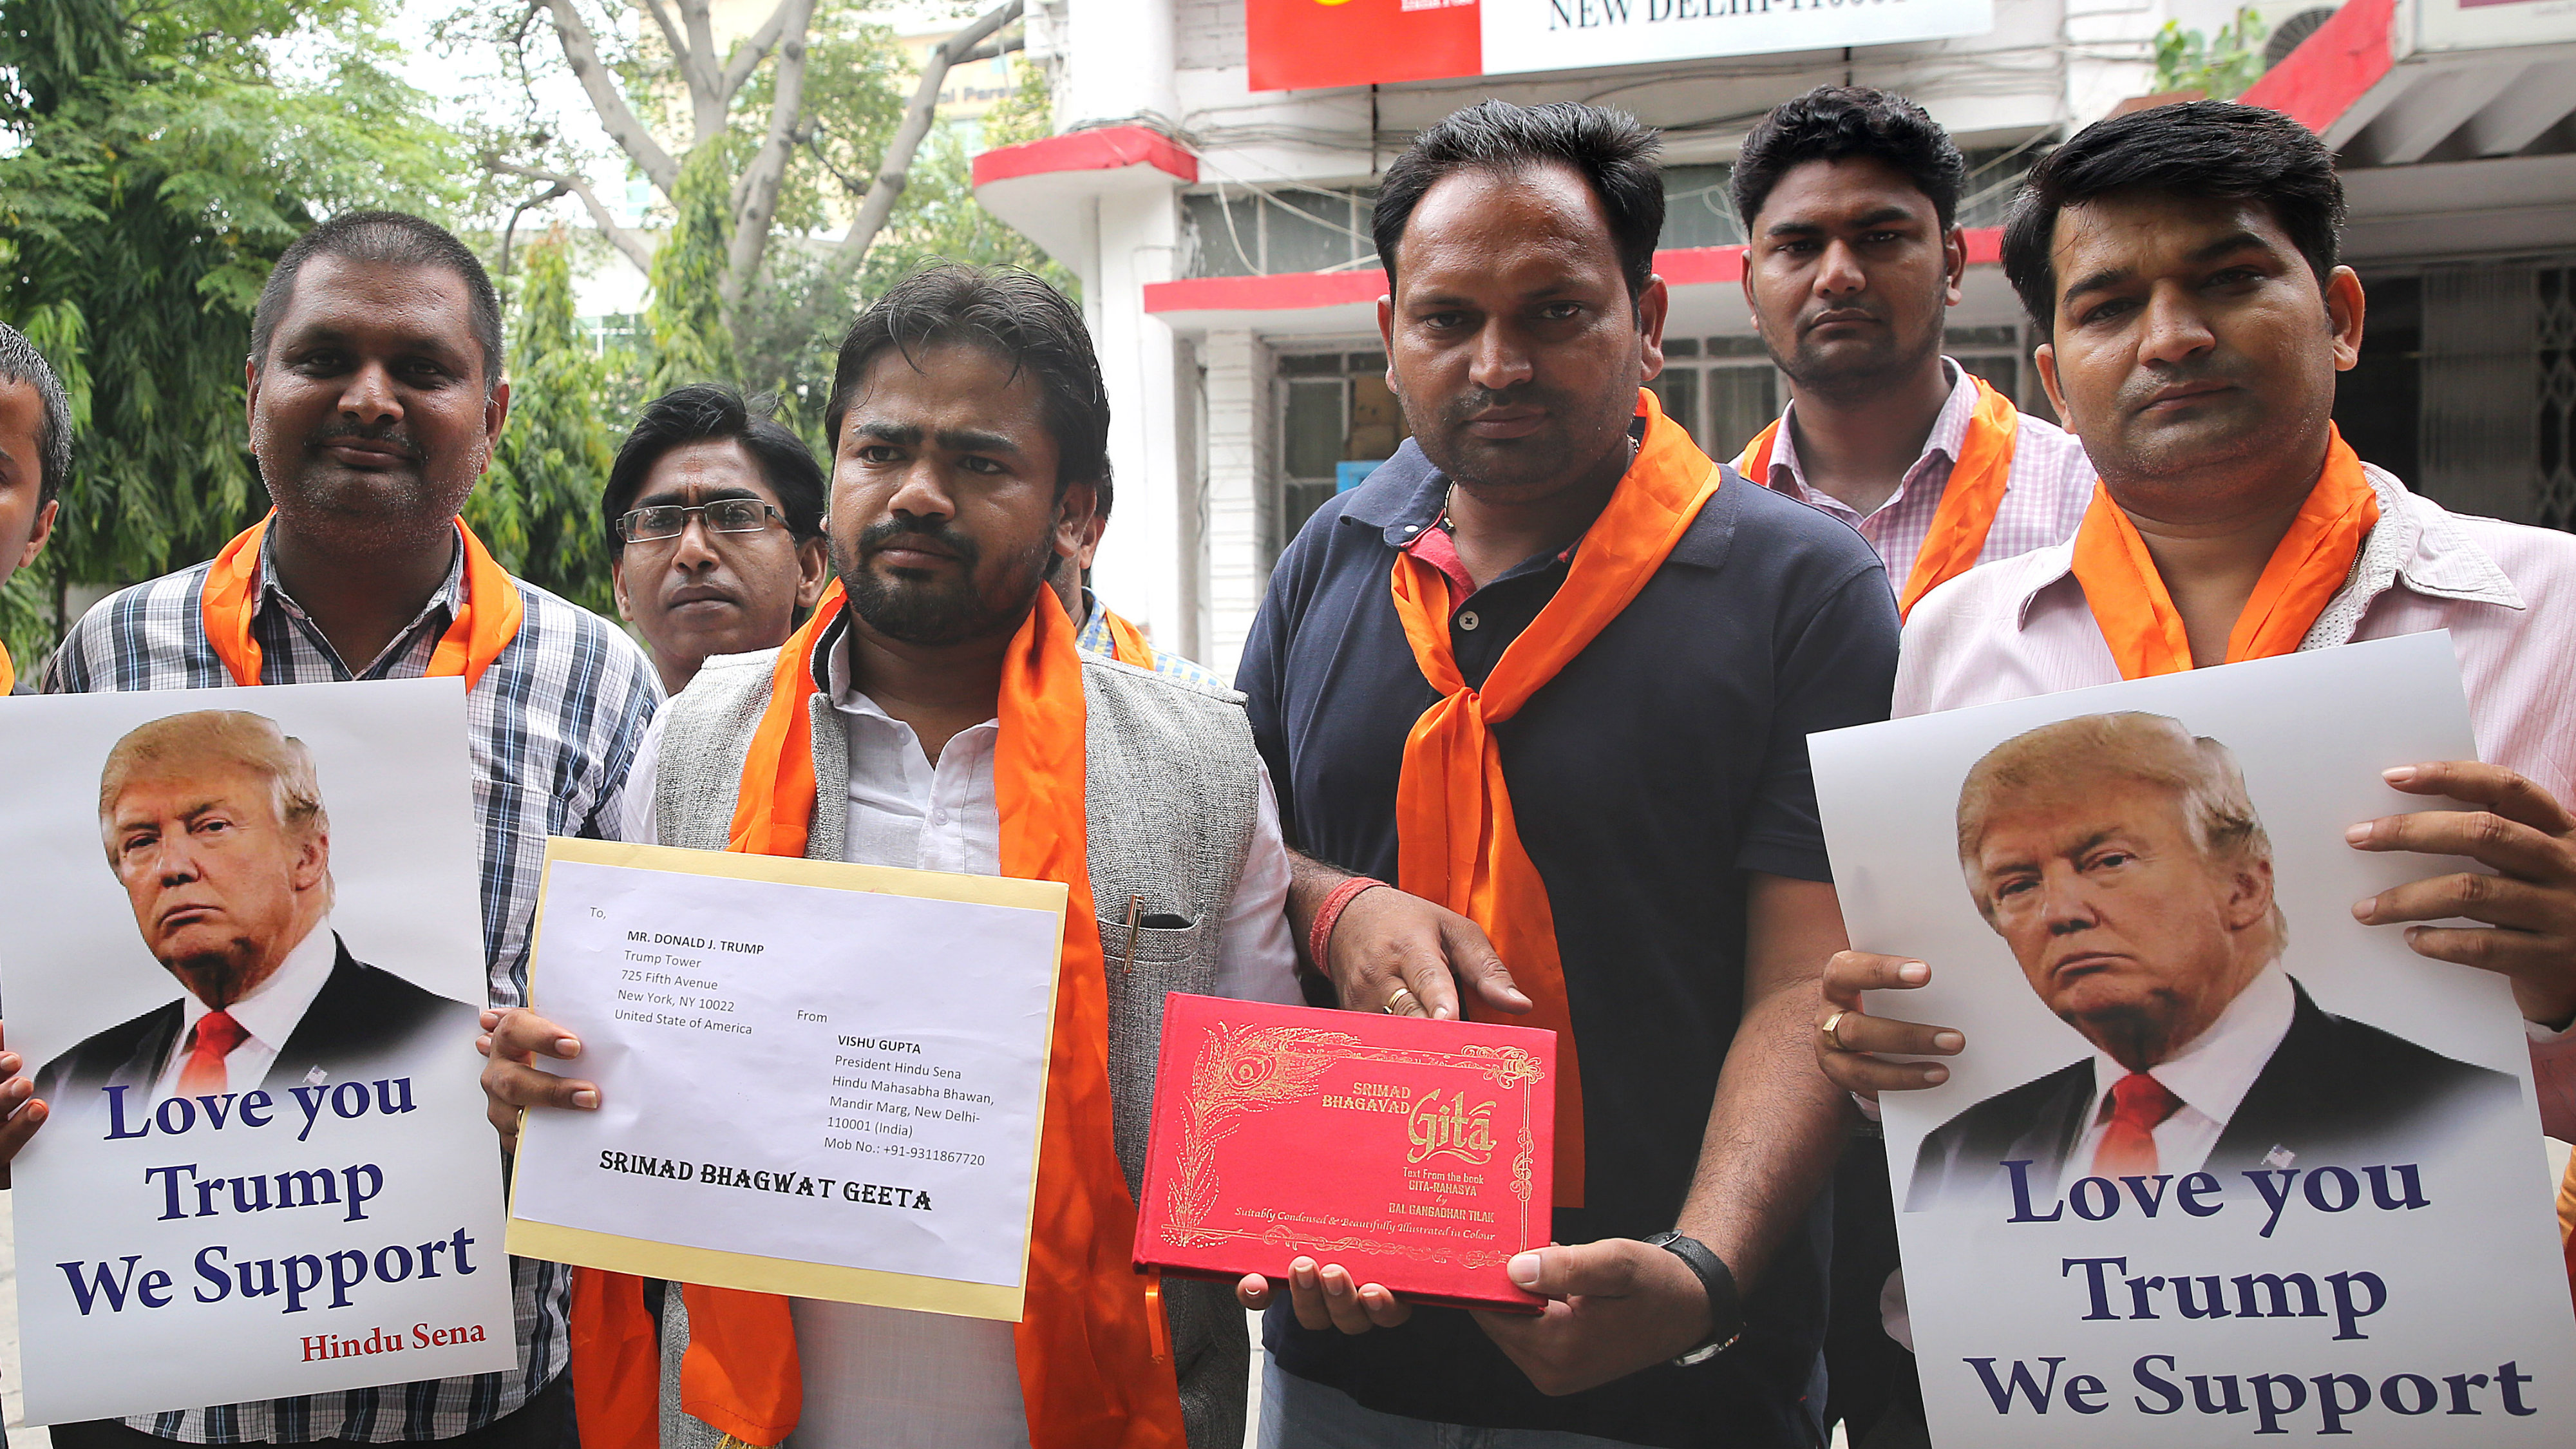 Indian activists from the right-wing organization Hindu Sena hold a Hindu holy book before sending it to US Republican Presidential nominee Donald Trump.